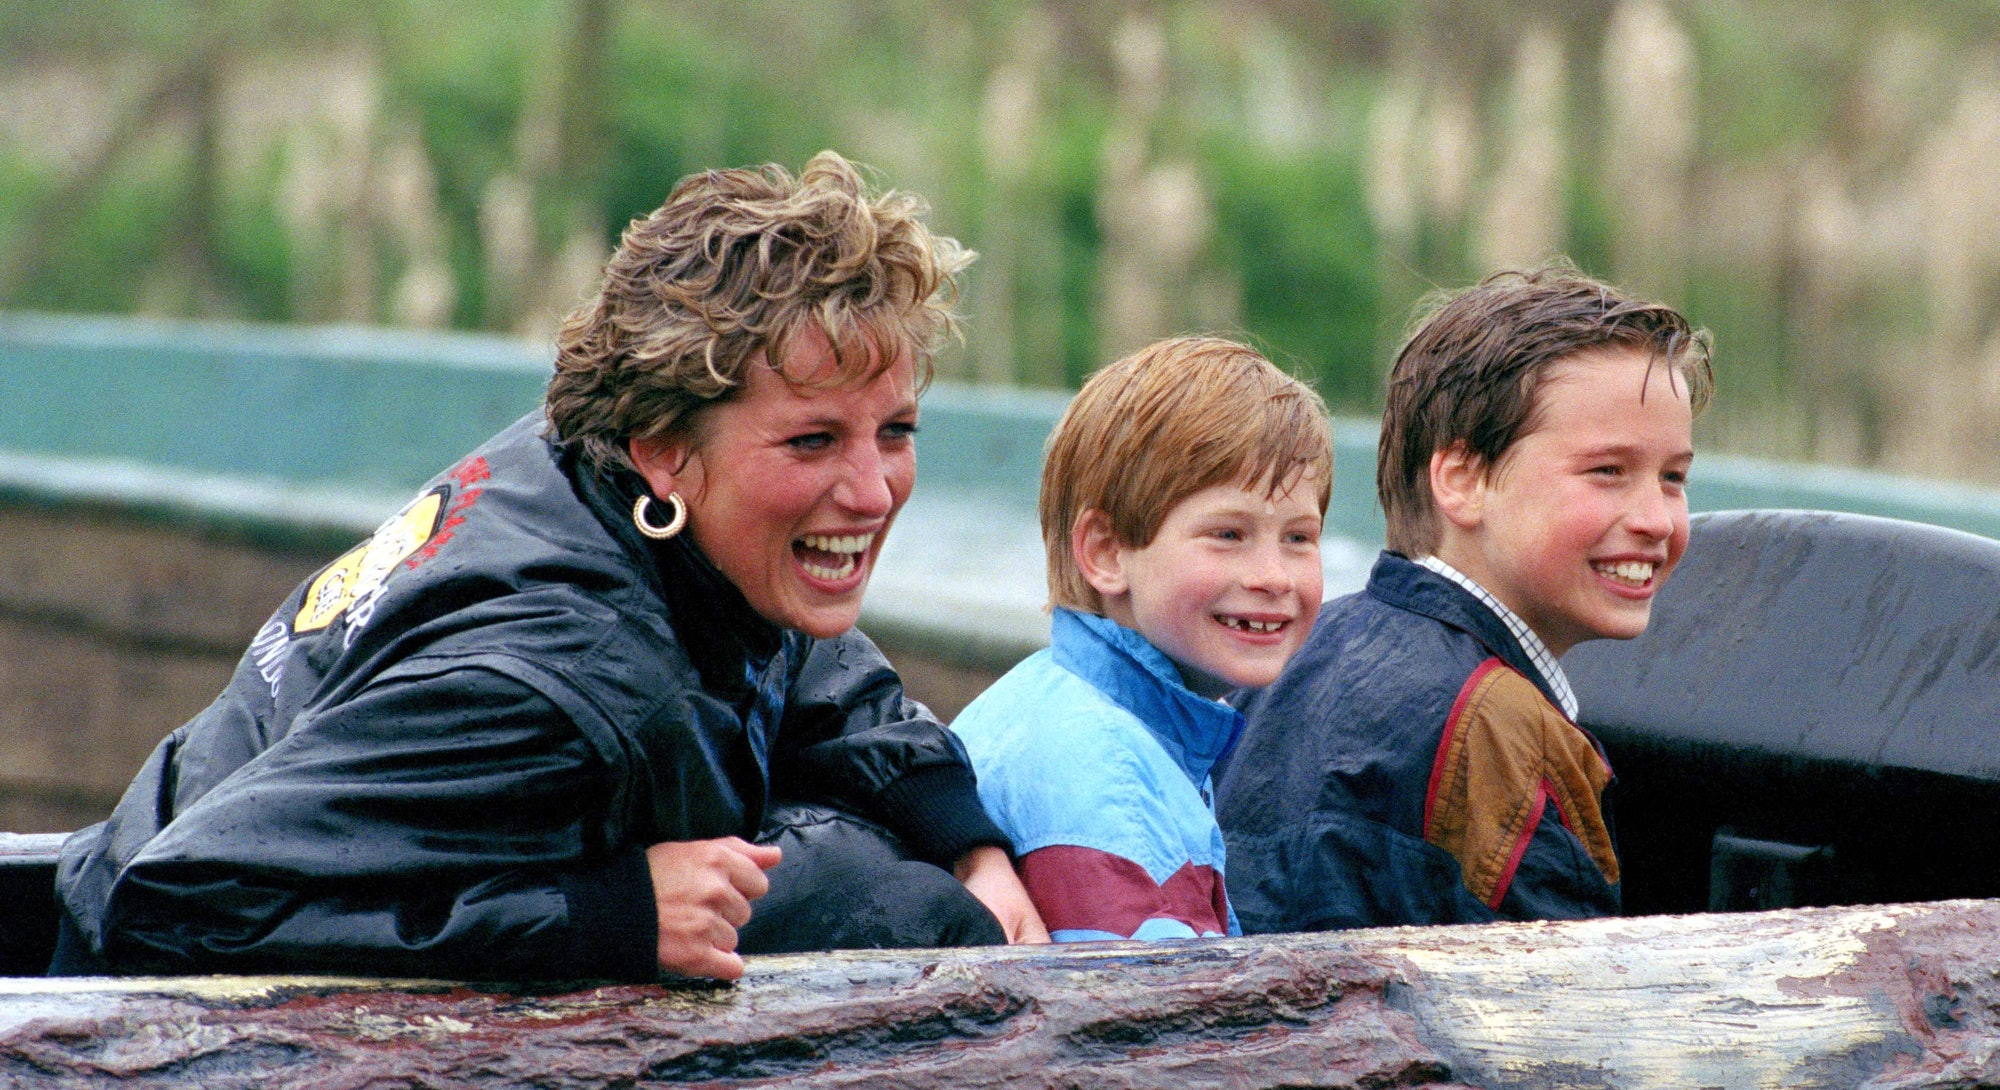 Picture From File:Diana Princess Of Wales, Prince William & Prince Harry Visit The 'Thorpe Park' Amu...